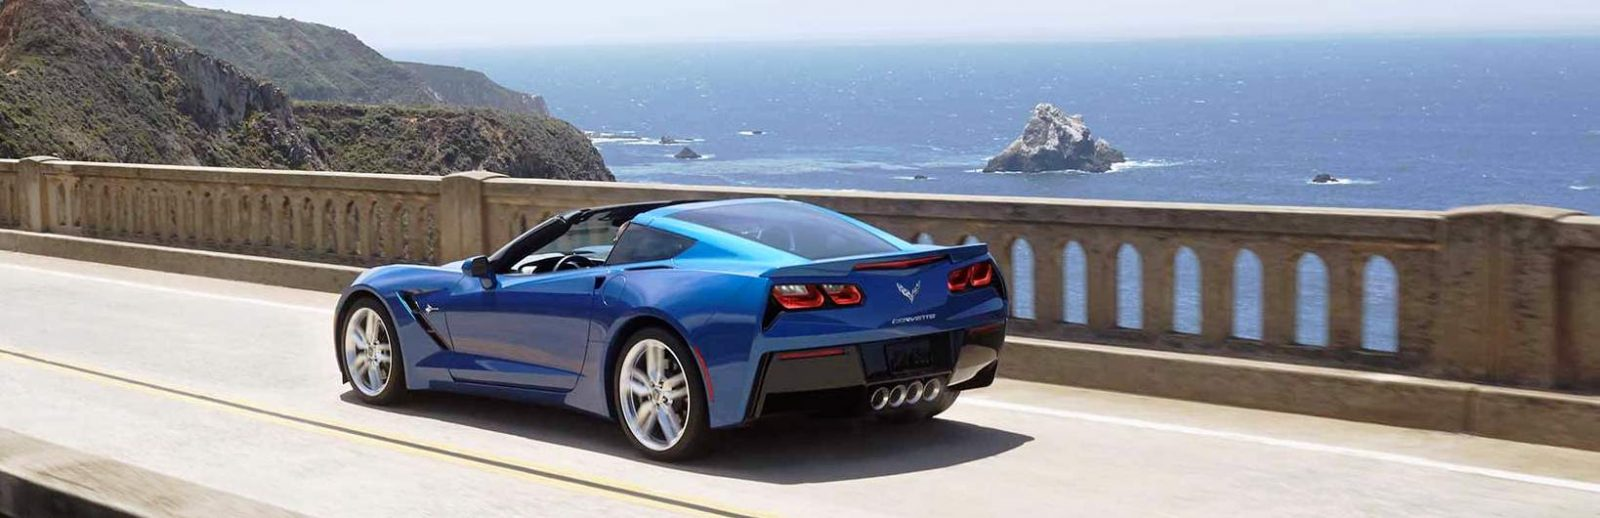 2014 Corvette Stingray Colors Gallery25